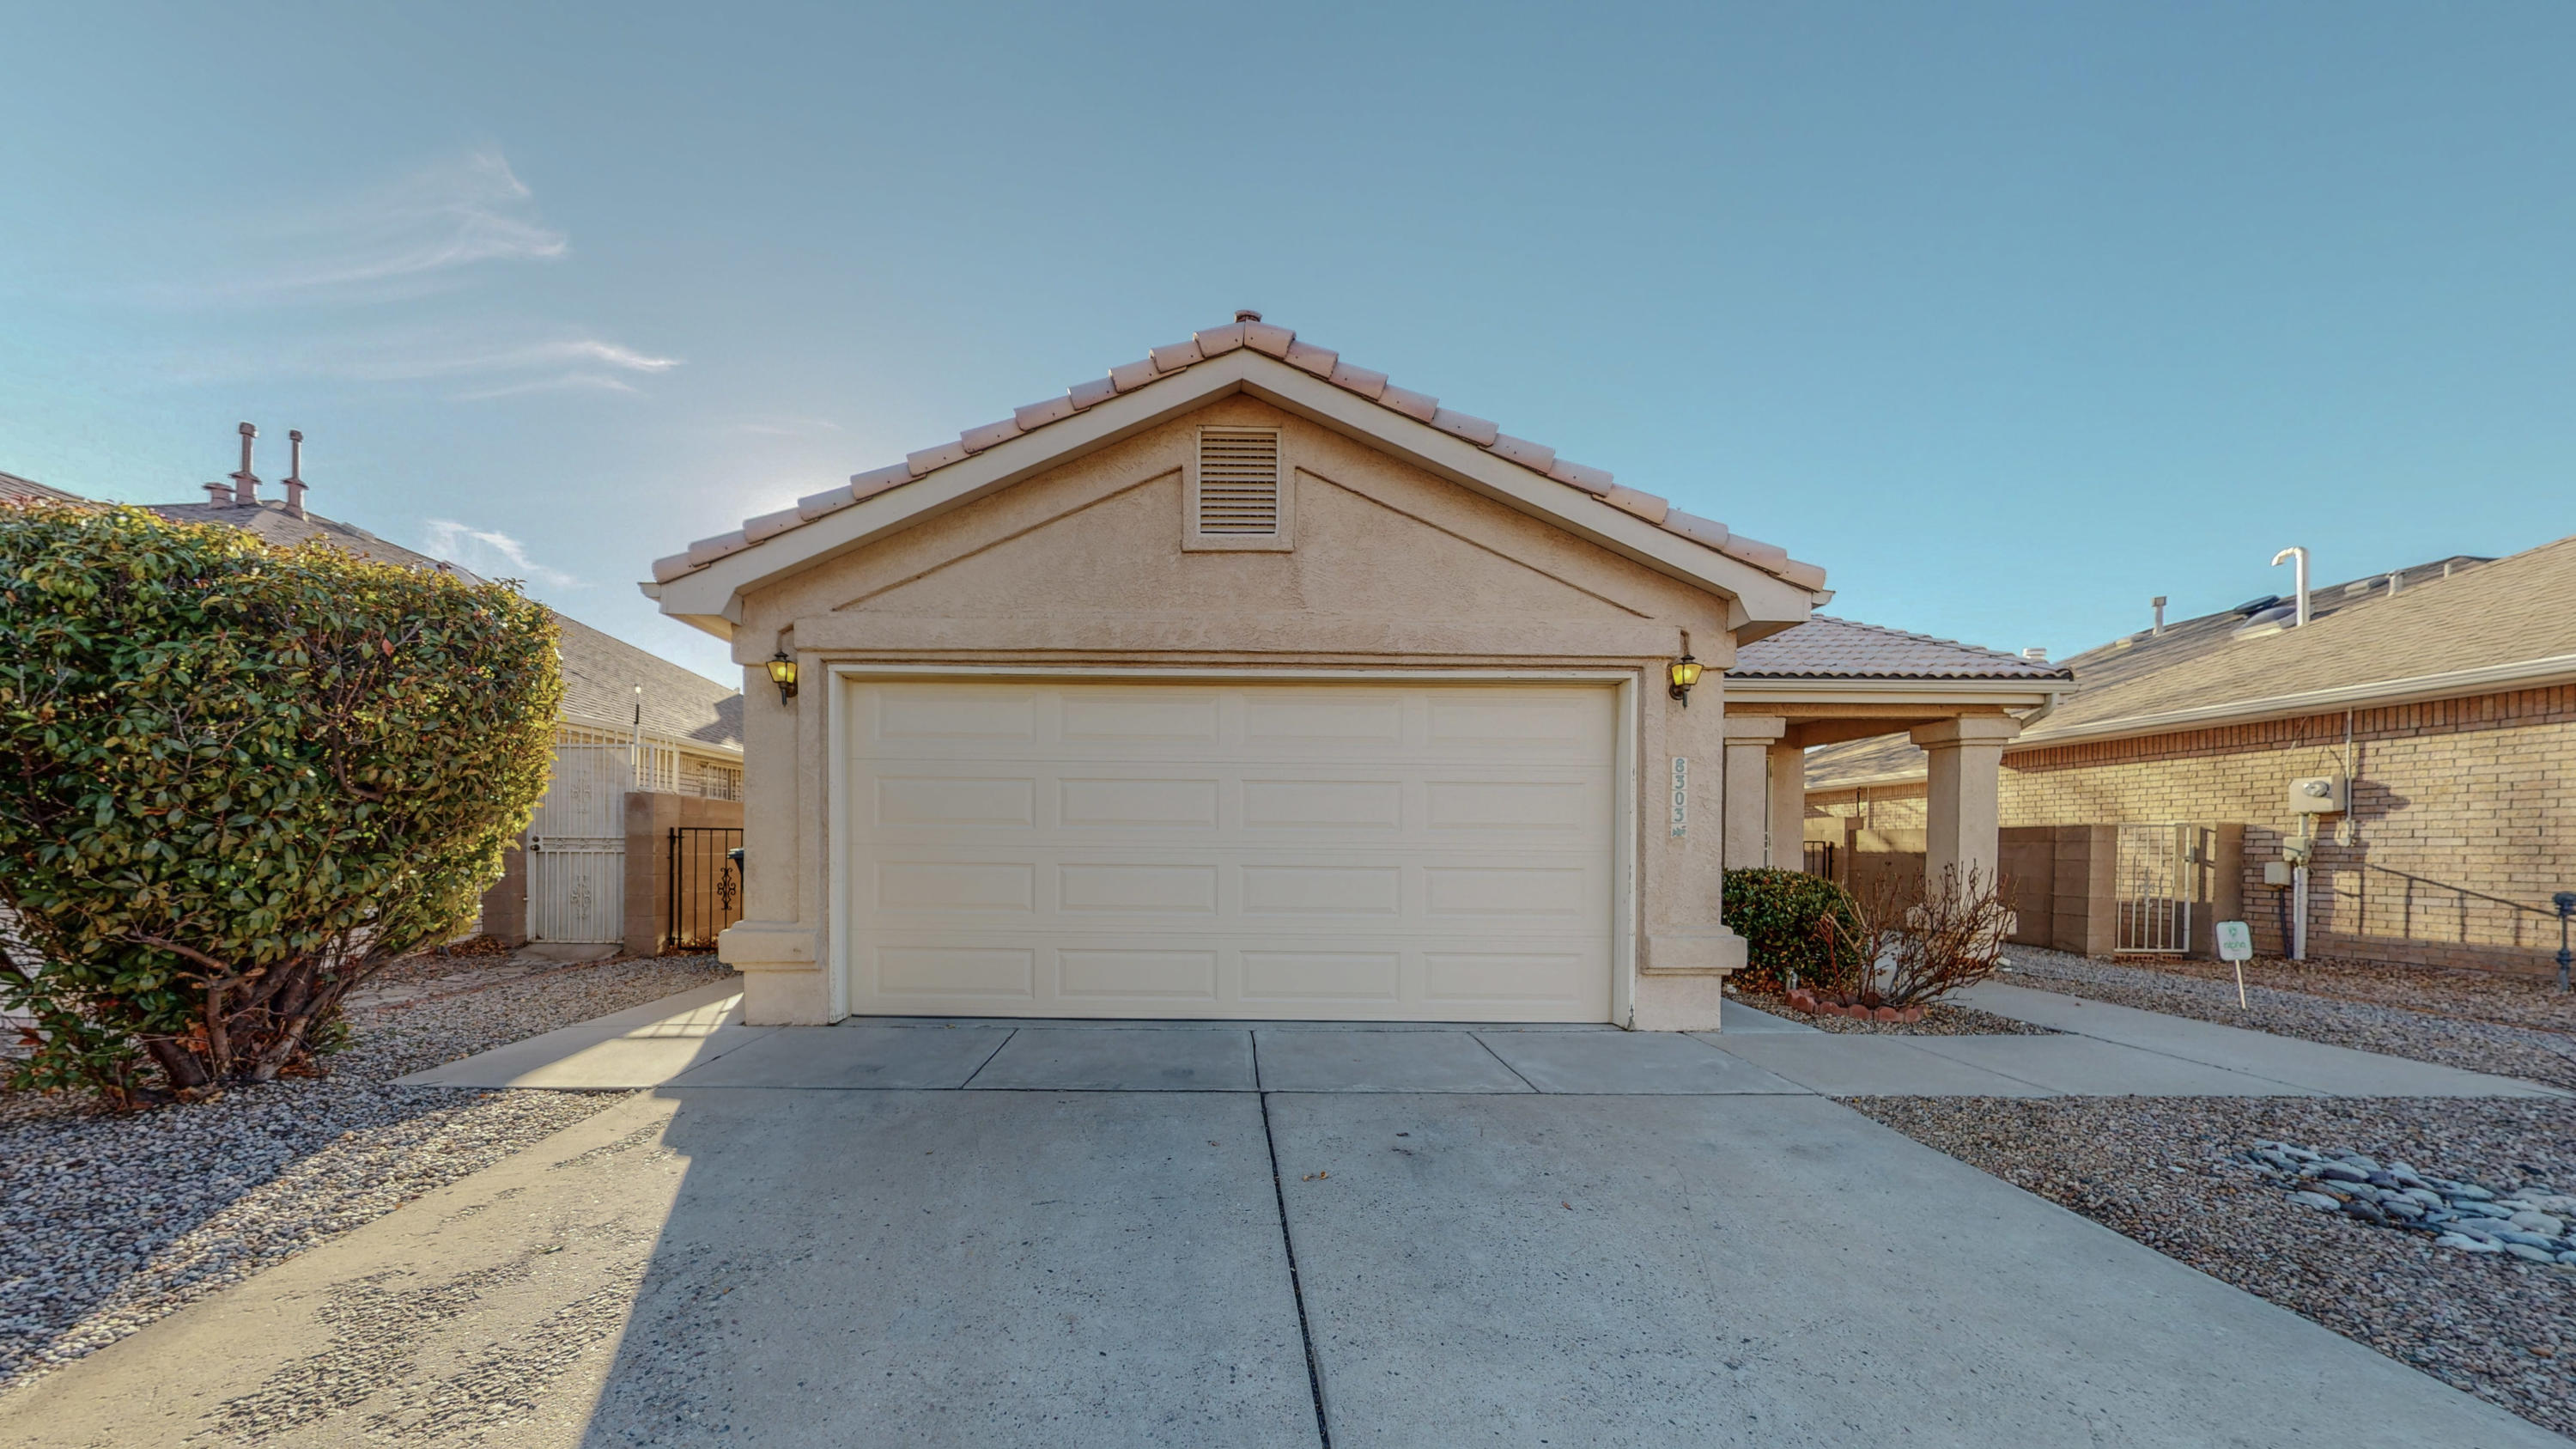 Welcome to this fantastic single story home ready for immediate move in! This home features great natural light and an open floorplan! The bedrooms are very spacious and the backyard is low maintenance! This home will not be available for long now is your chance to make it yours! Call today for your own private viewing!